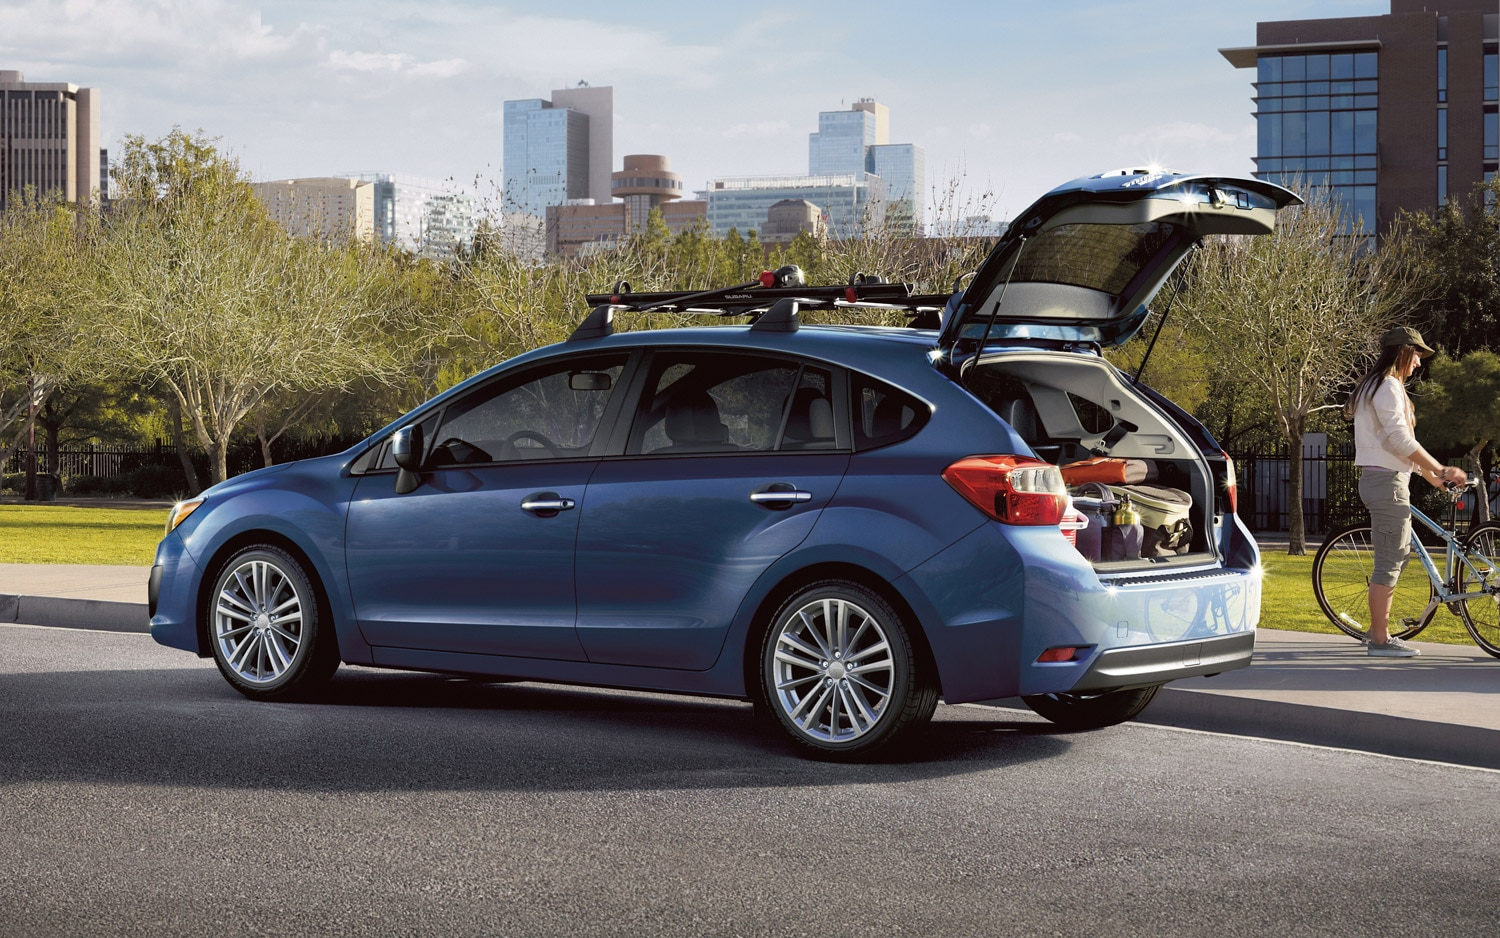 2013 subaru impreza wagon blue gallery hd cars wallpaper 2013 subaru impreza hatchback blue choice image hd cars wallpaper 2013 subaru impreza hatchback blue gallery vanachro Images